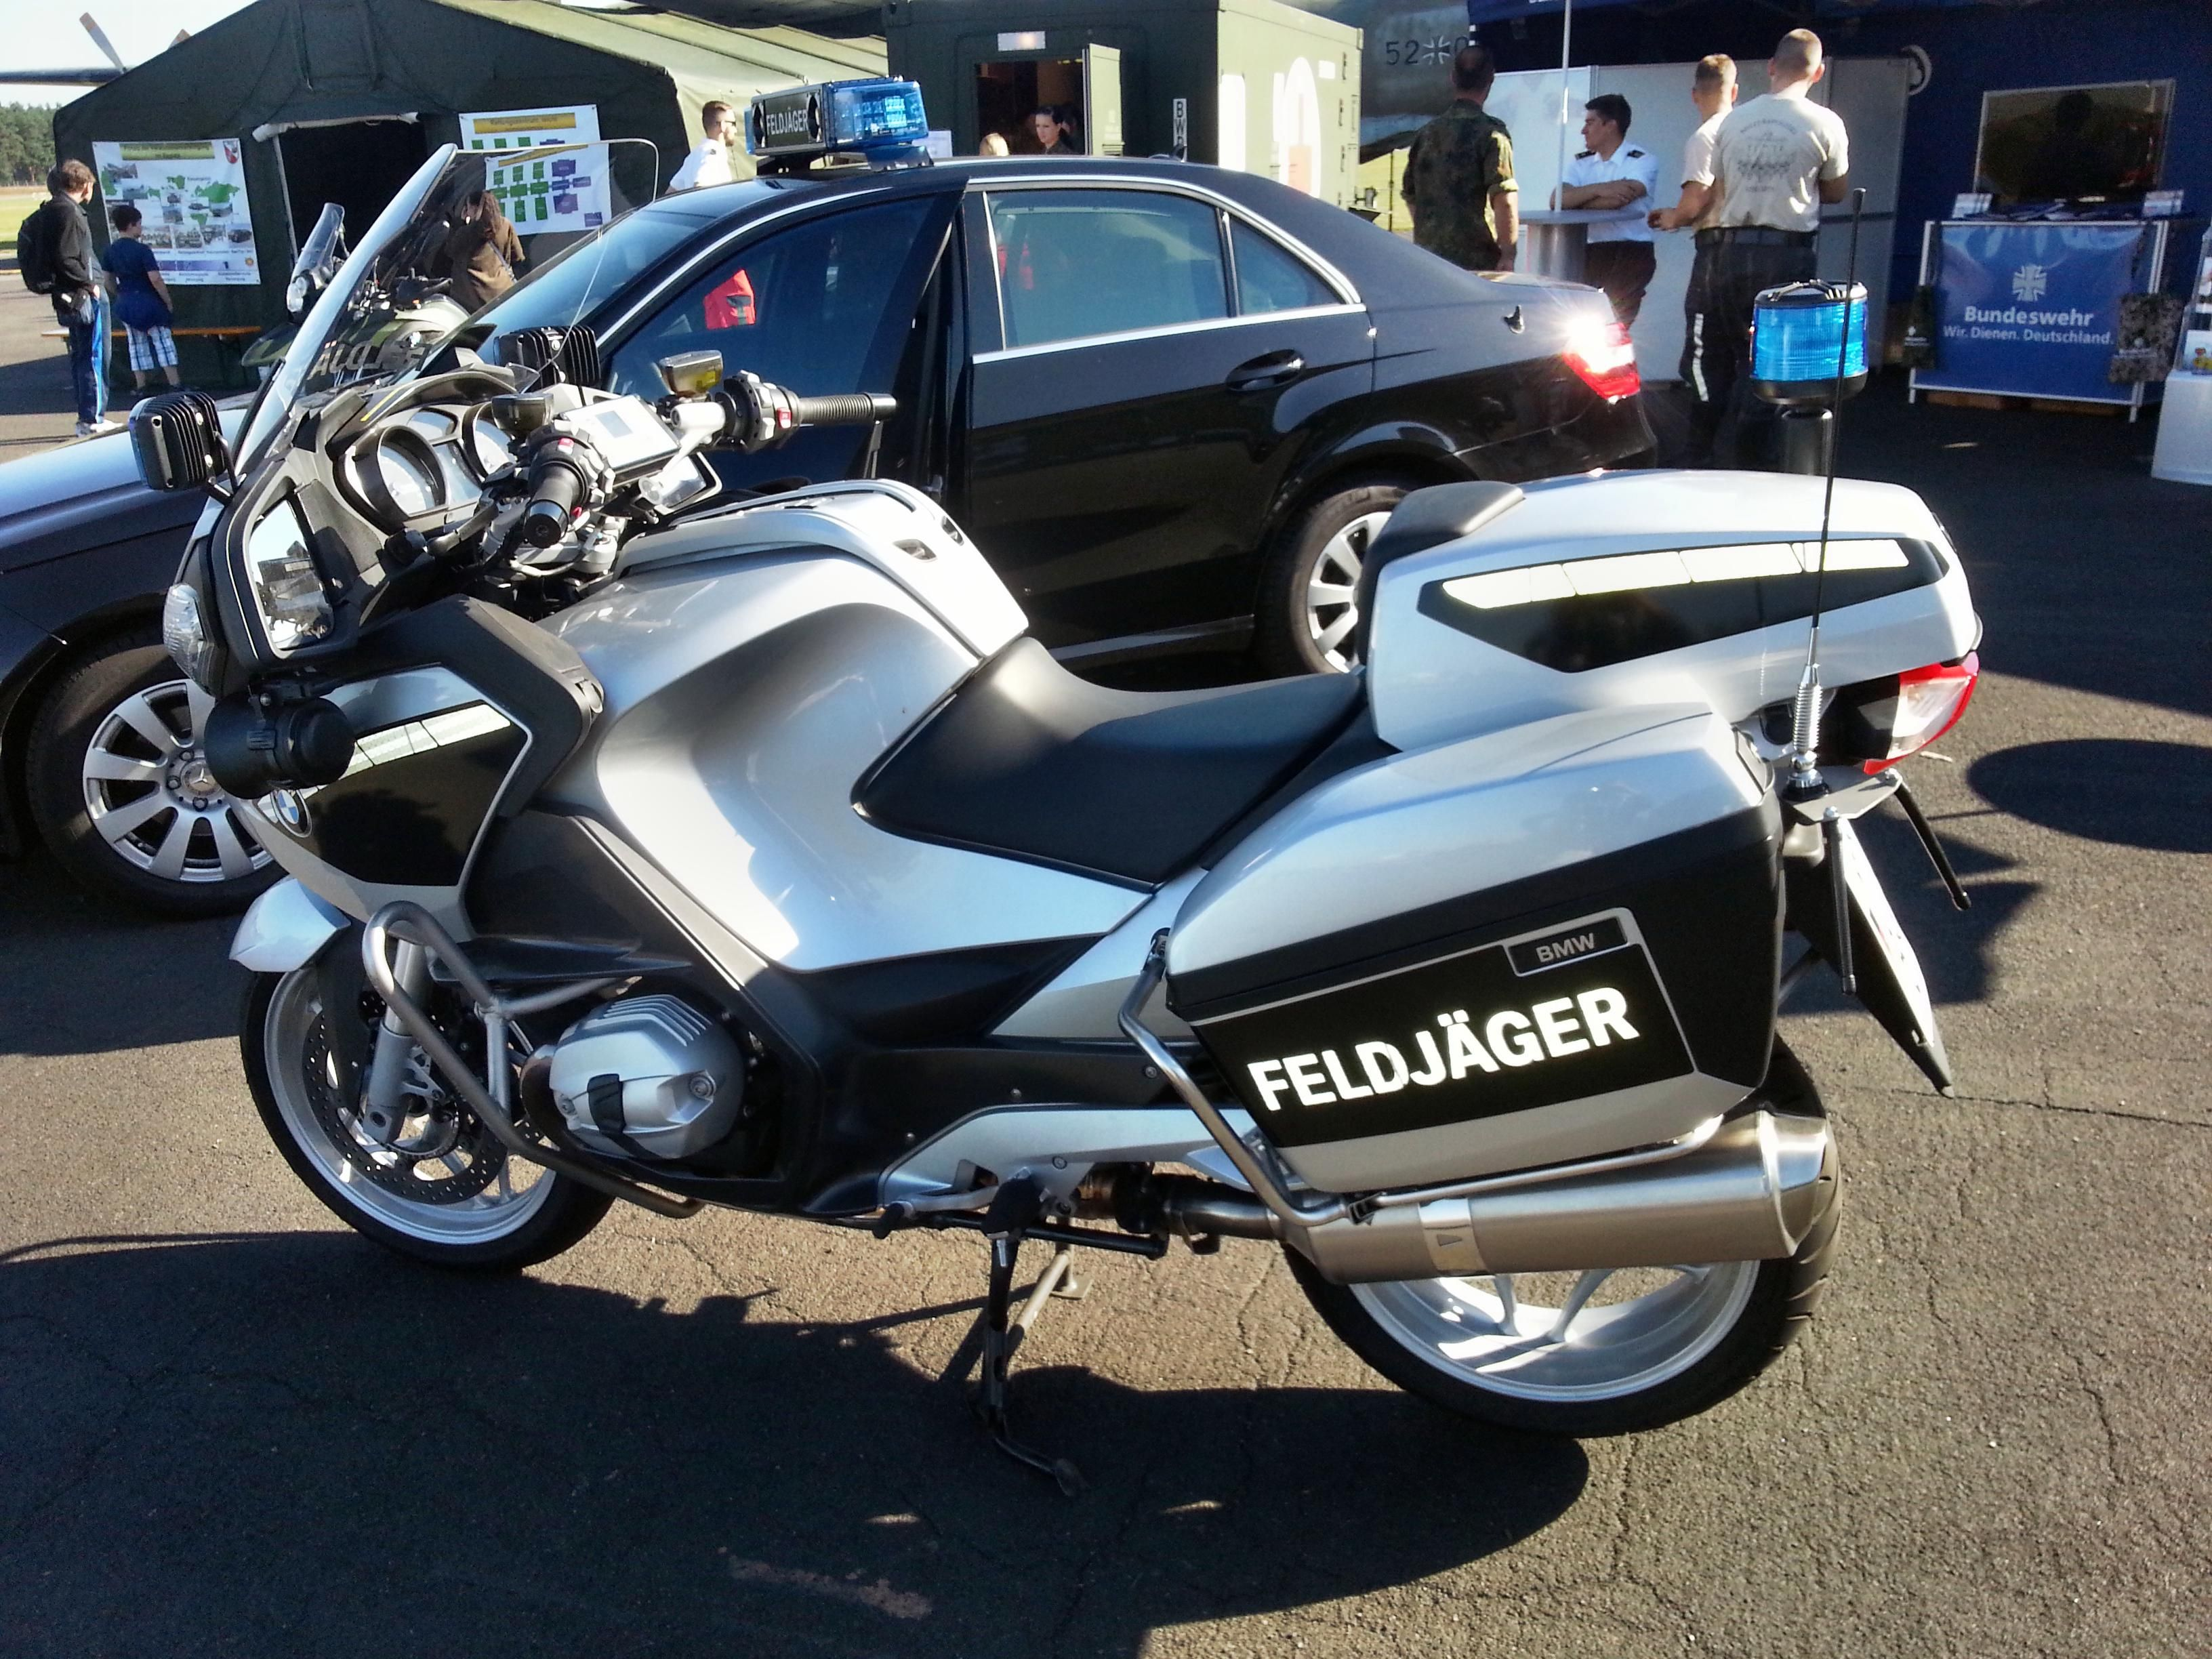 german military police motorcycle motorcycle camping camping gear bmw r1200rt police cars  [ 3264 x 2448 Pixel ]